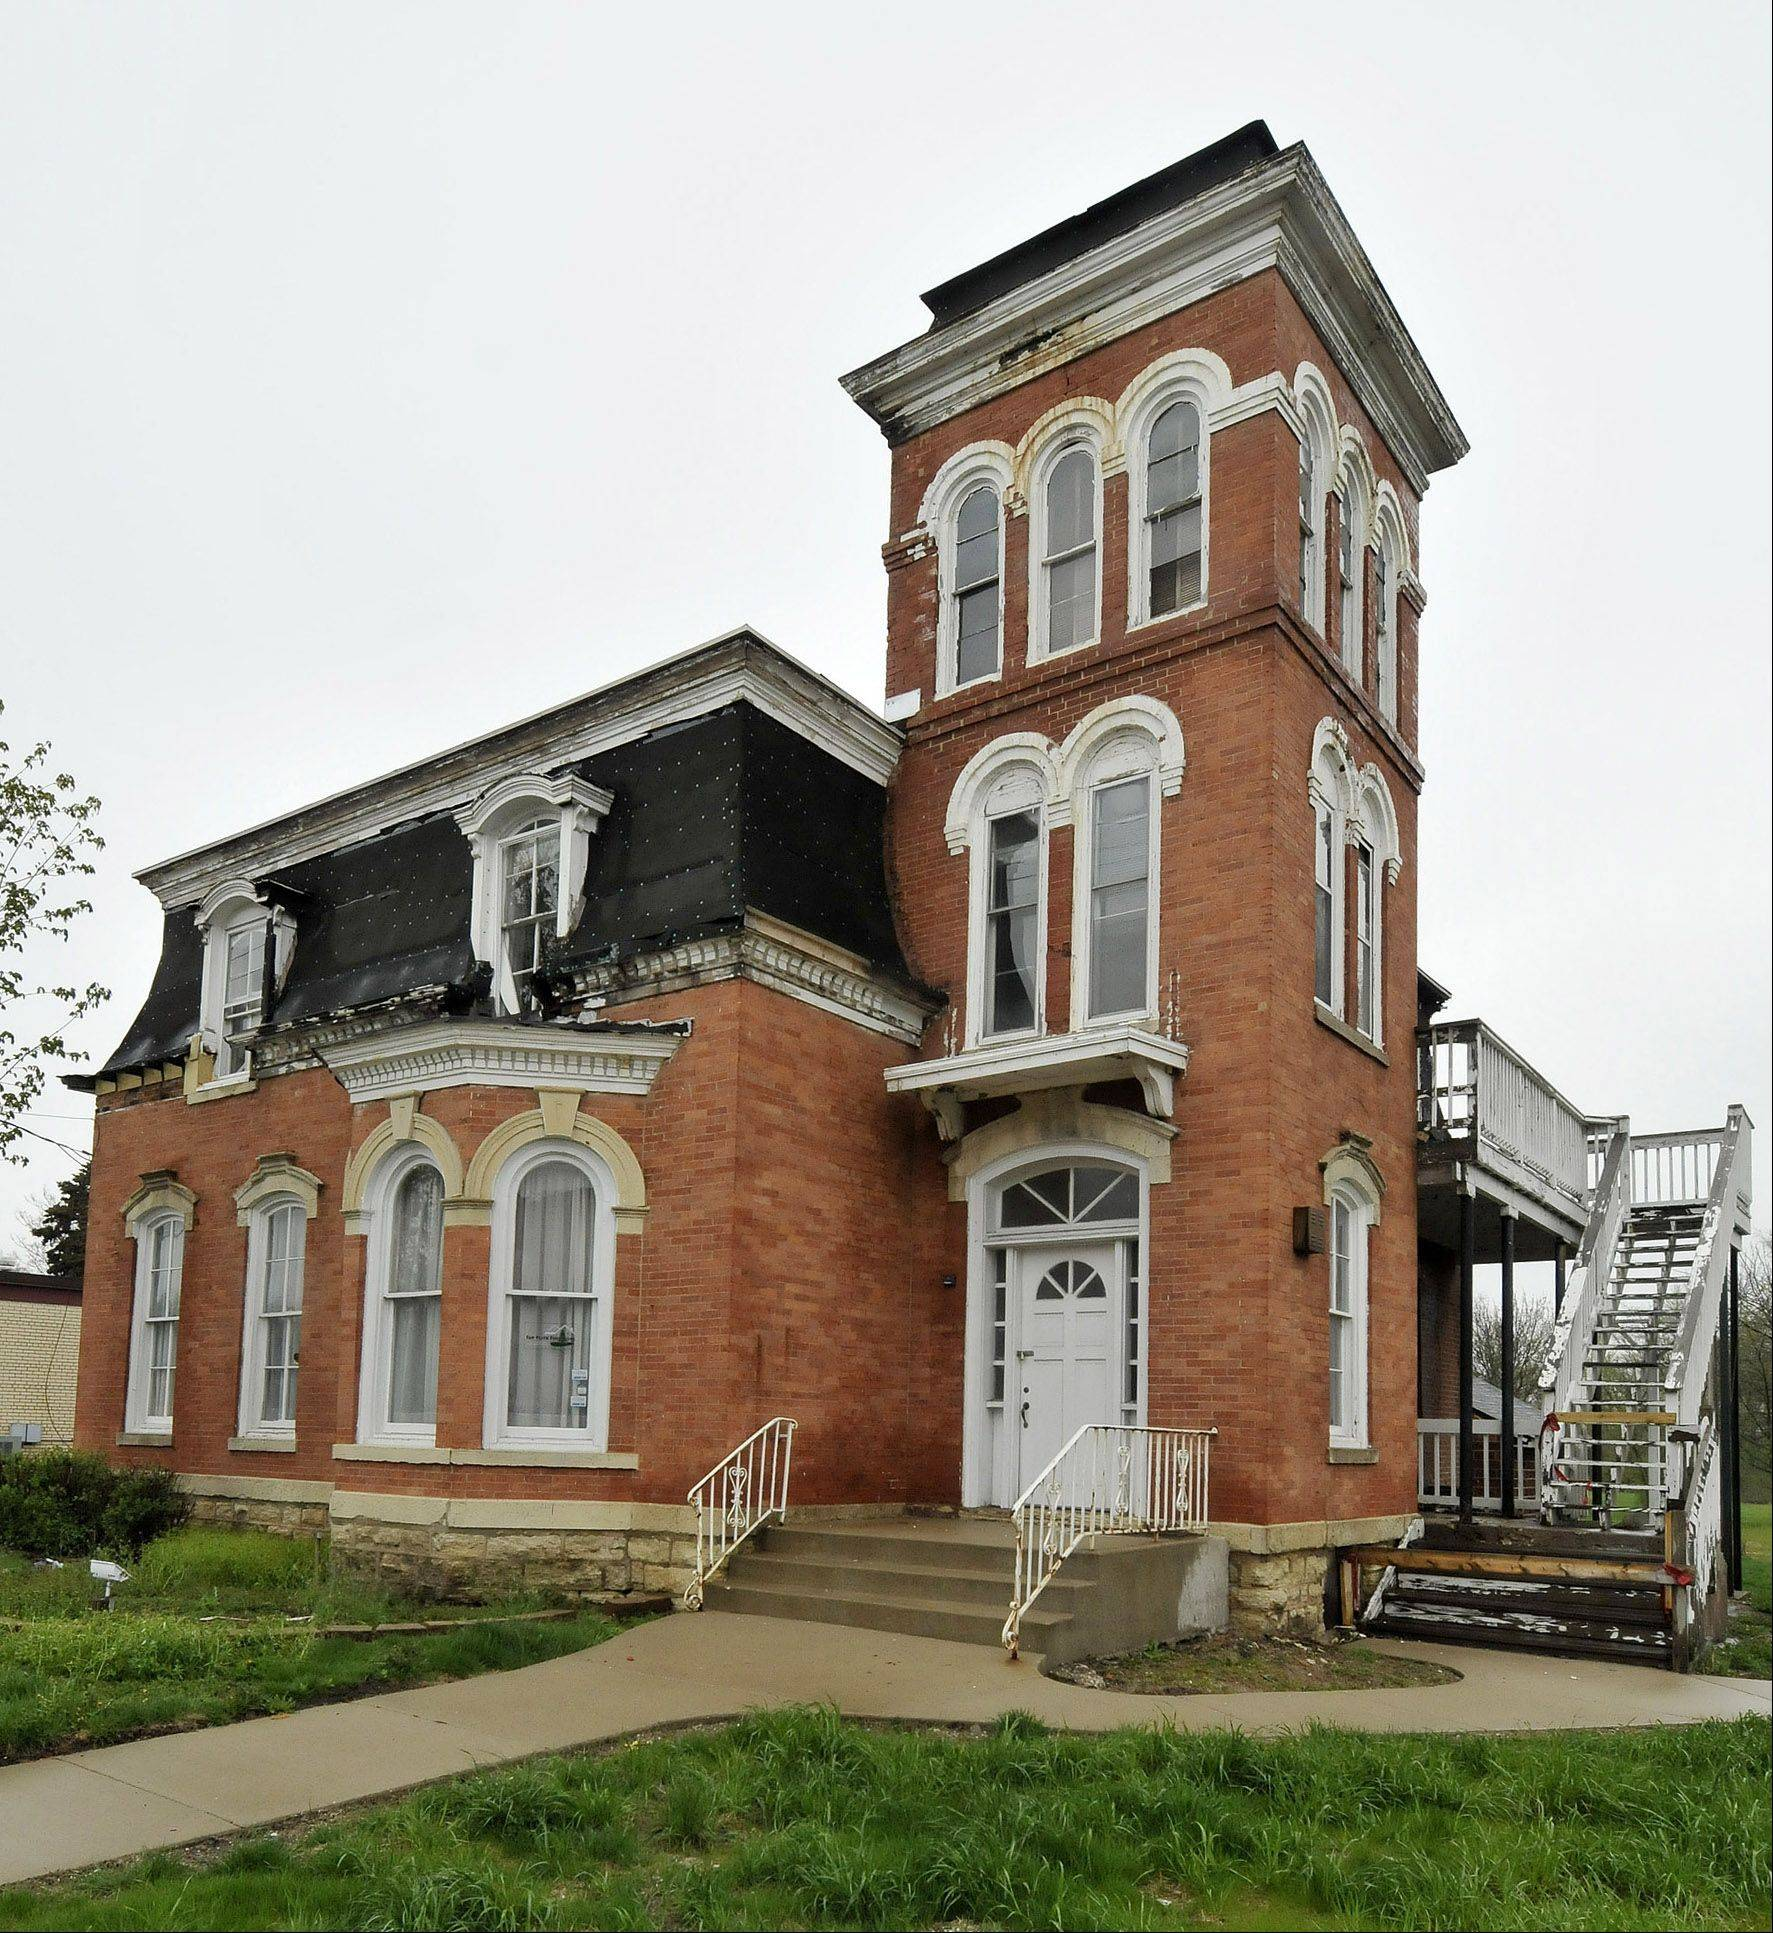 Plans to save the 144-year-old Joel Wiant House in West Chicago have yet to be finalized.